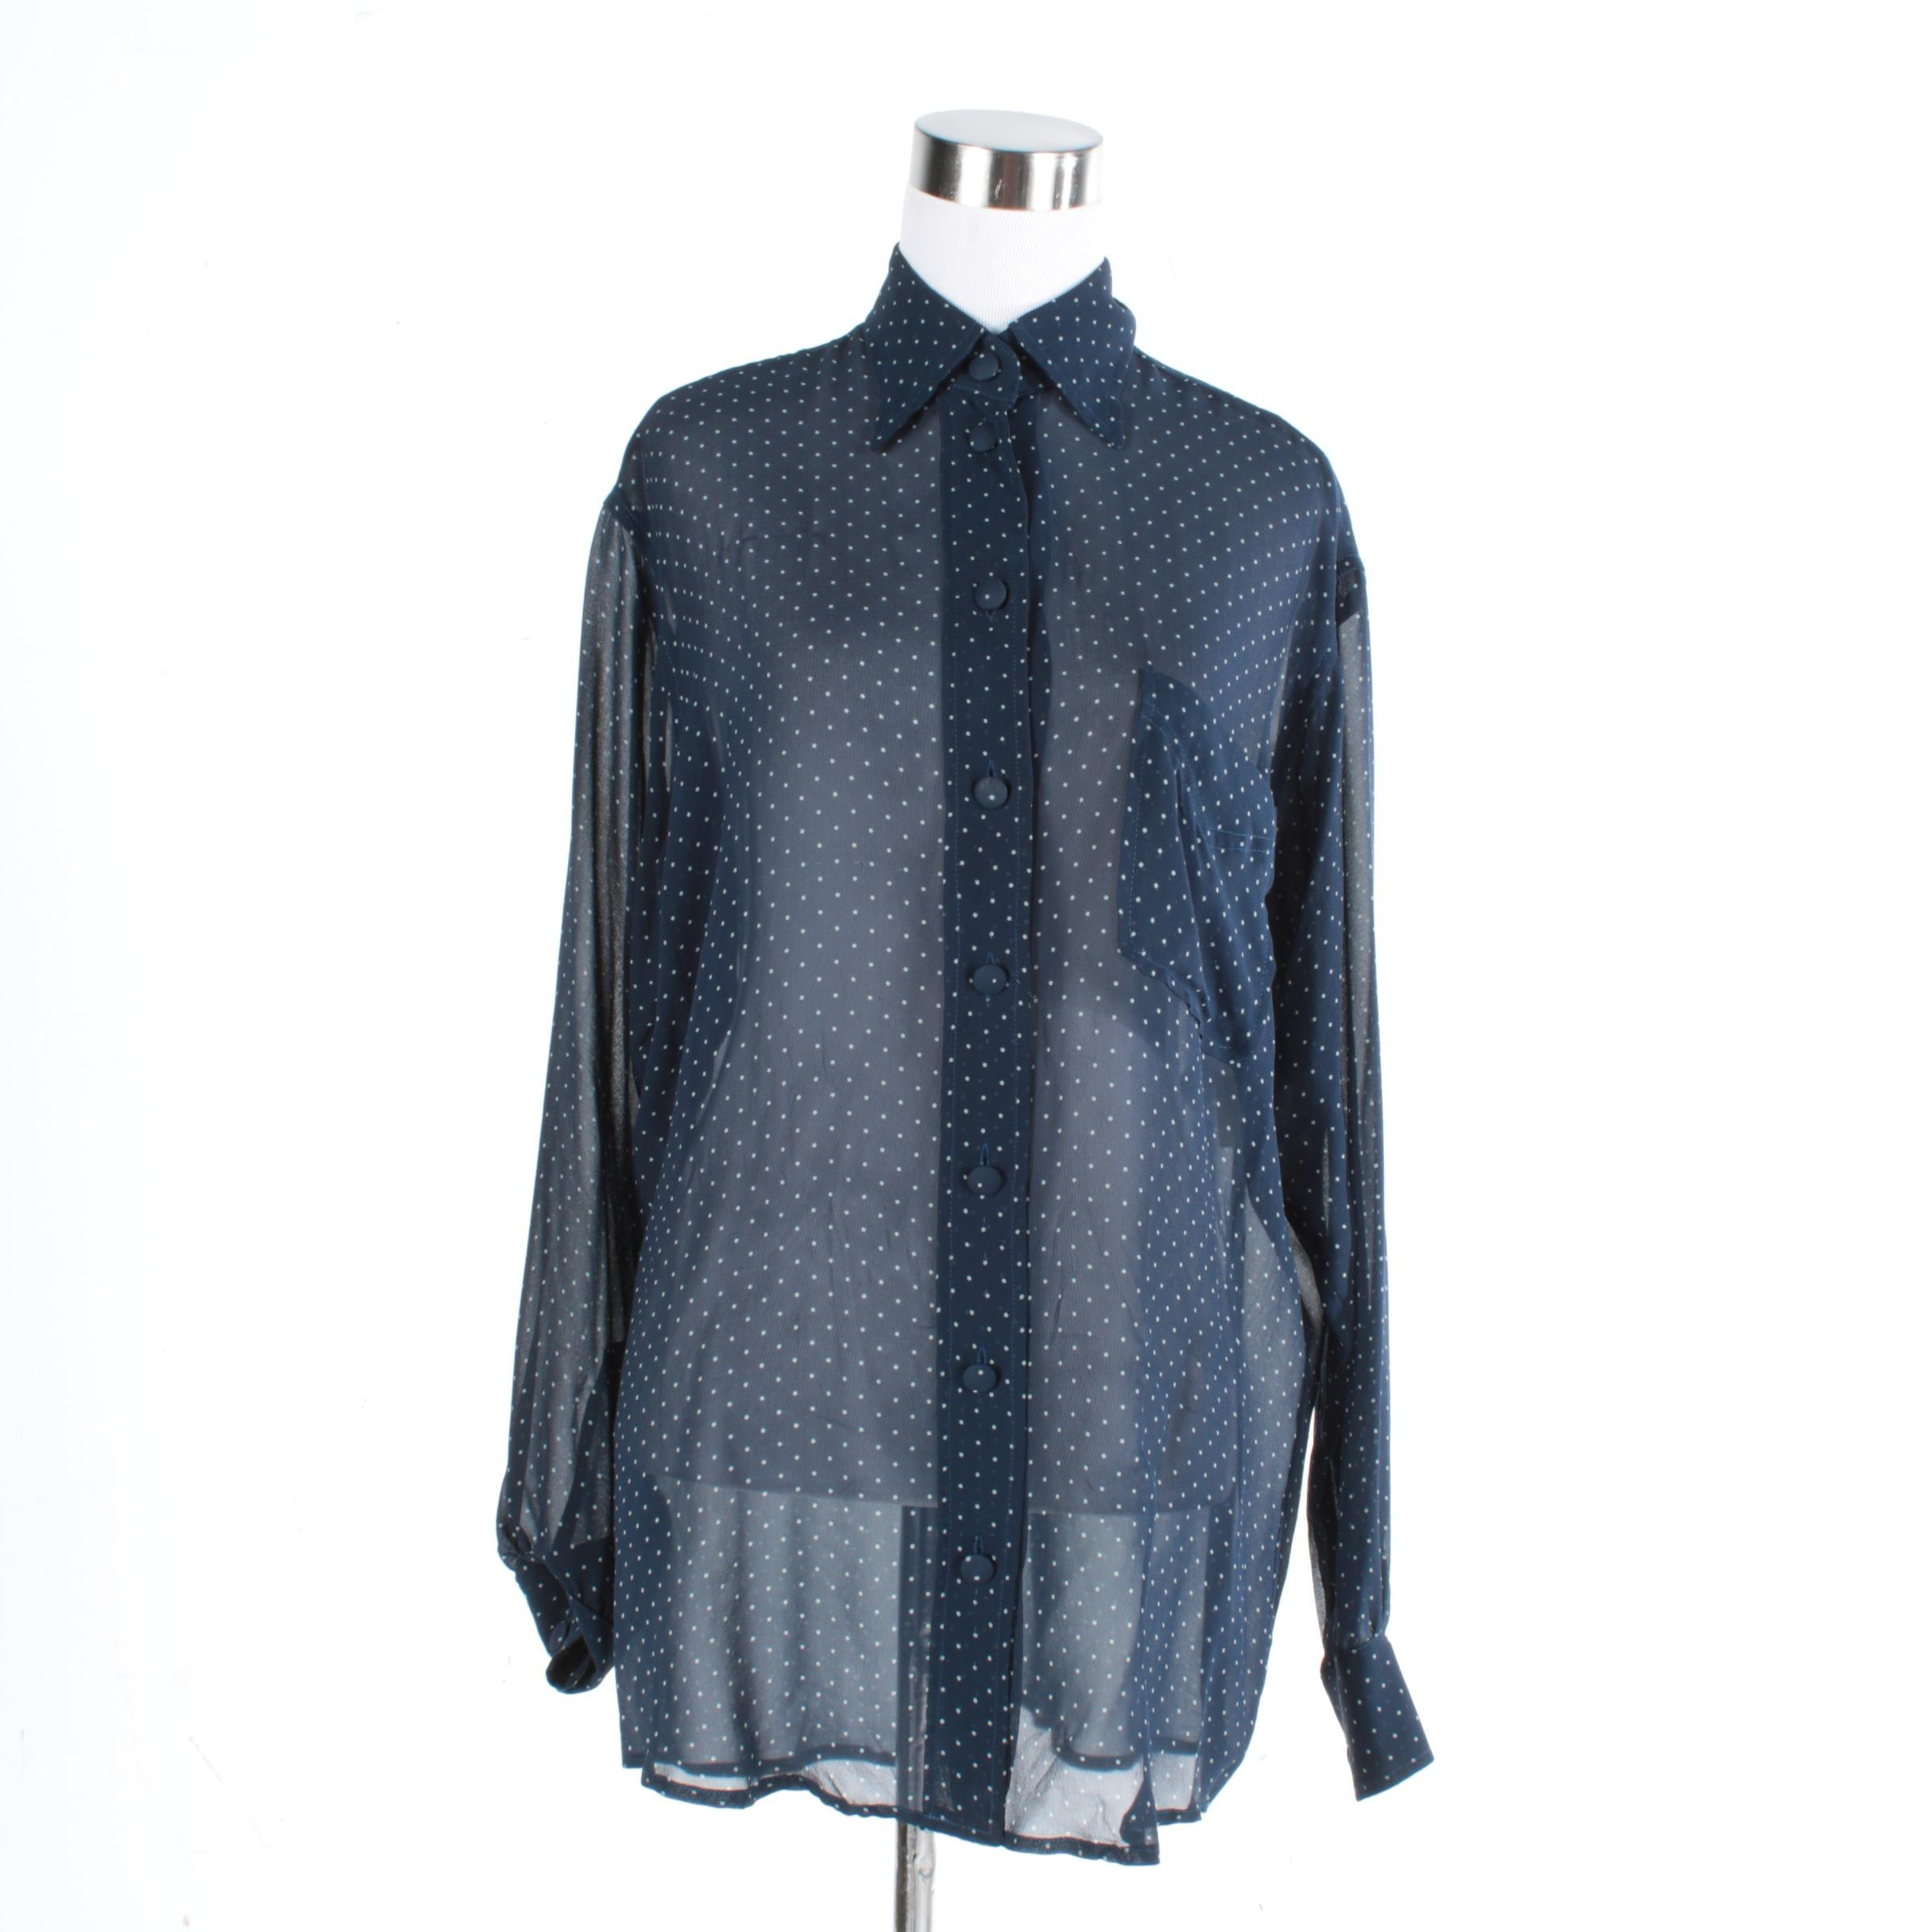 Moschino Silk Blue and White Polka Dot Blouse